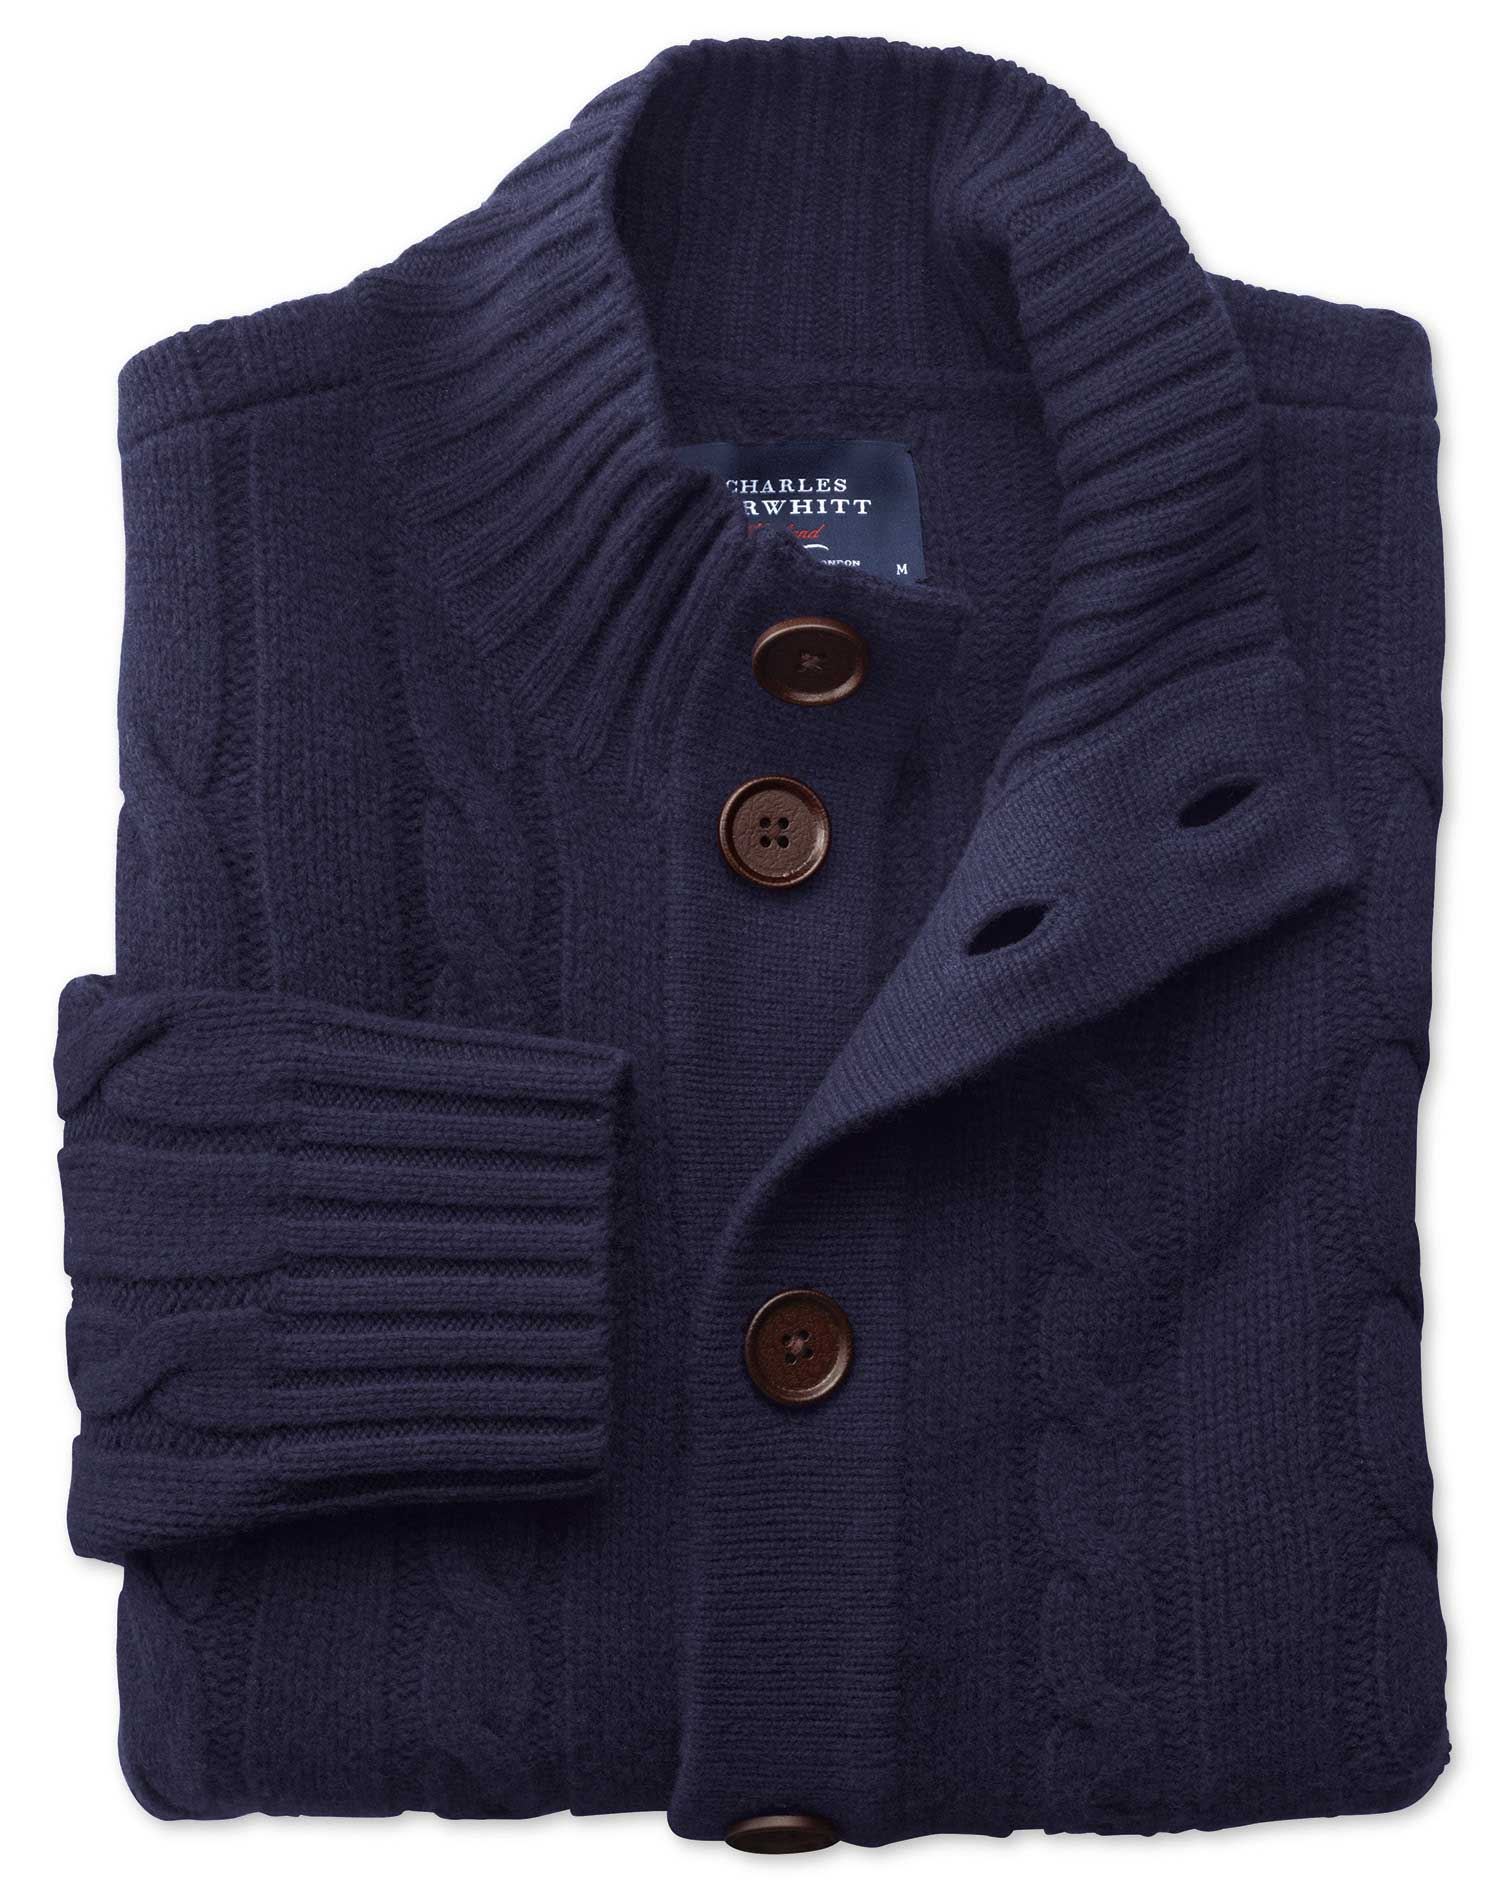 Navy Lambswool Cable Cardigan Size Large by Charles Tyrwhitt